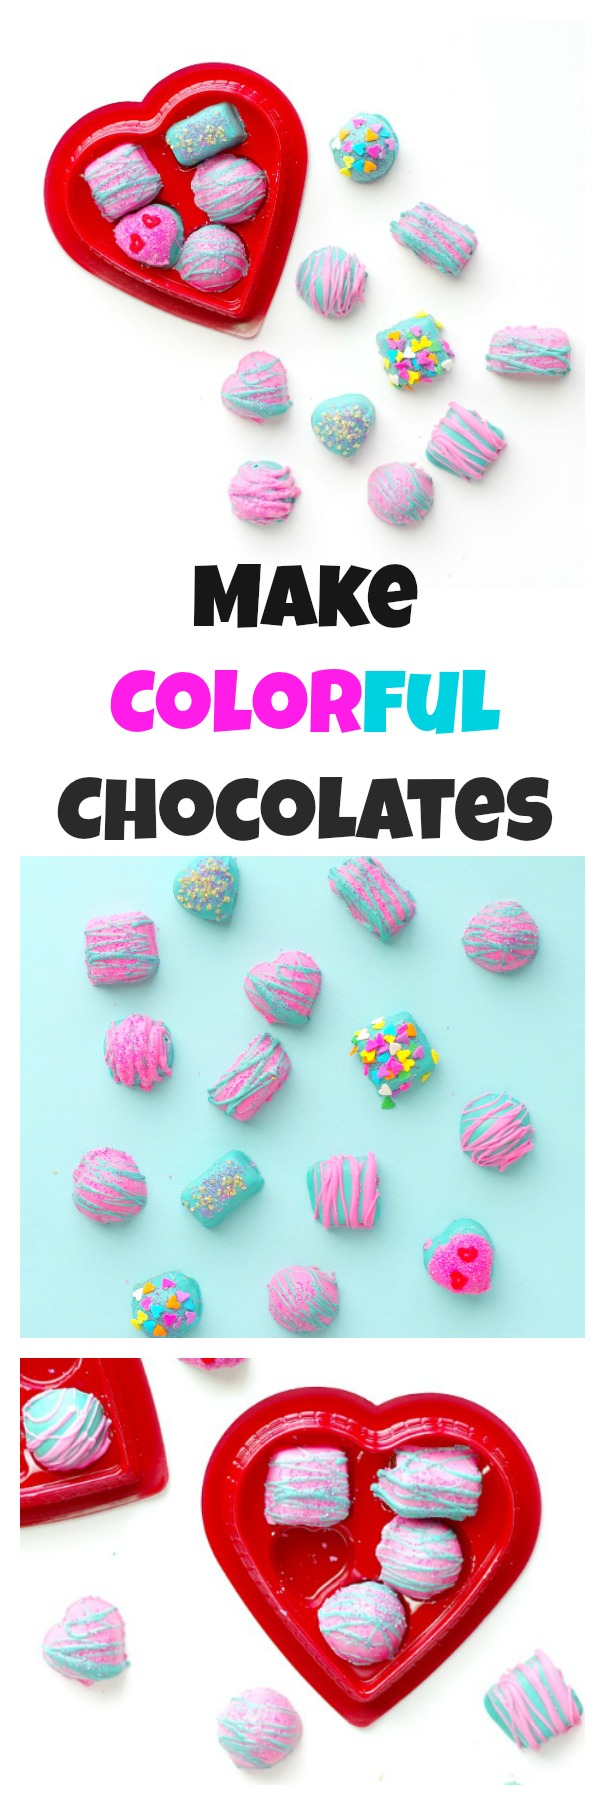 Make Colorful Chocolates